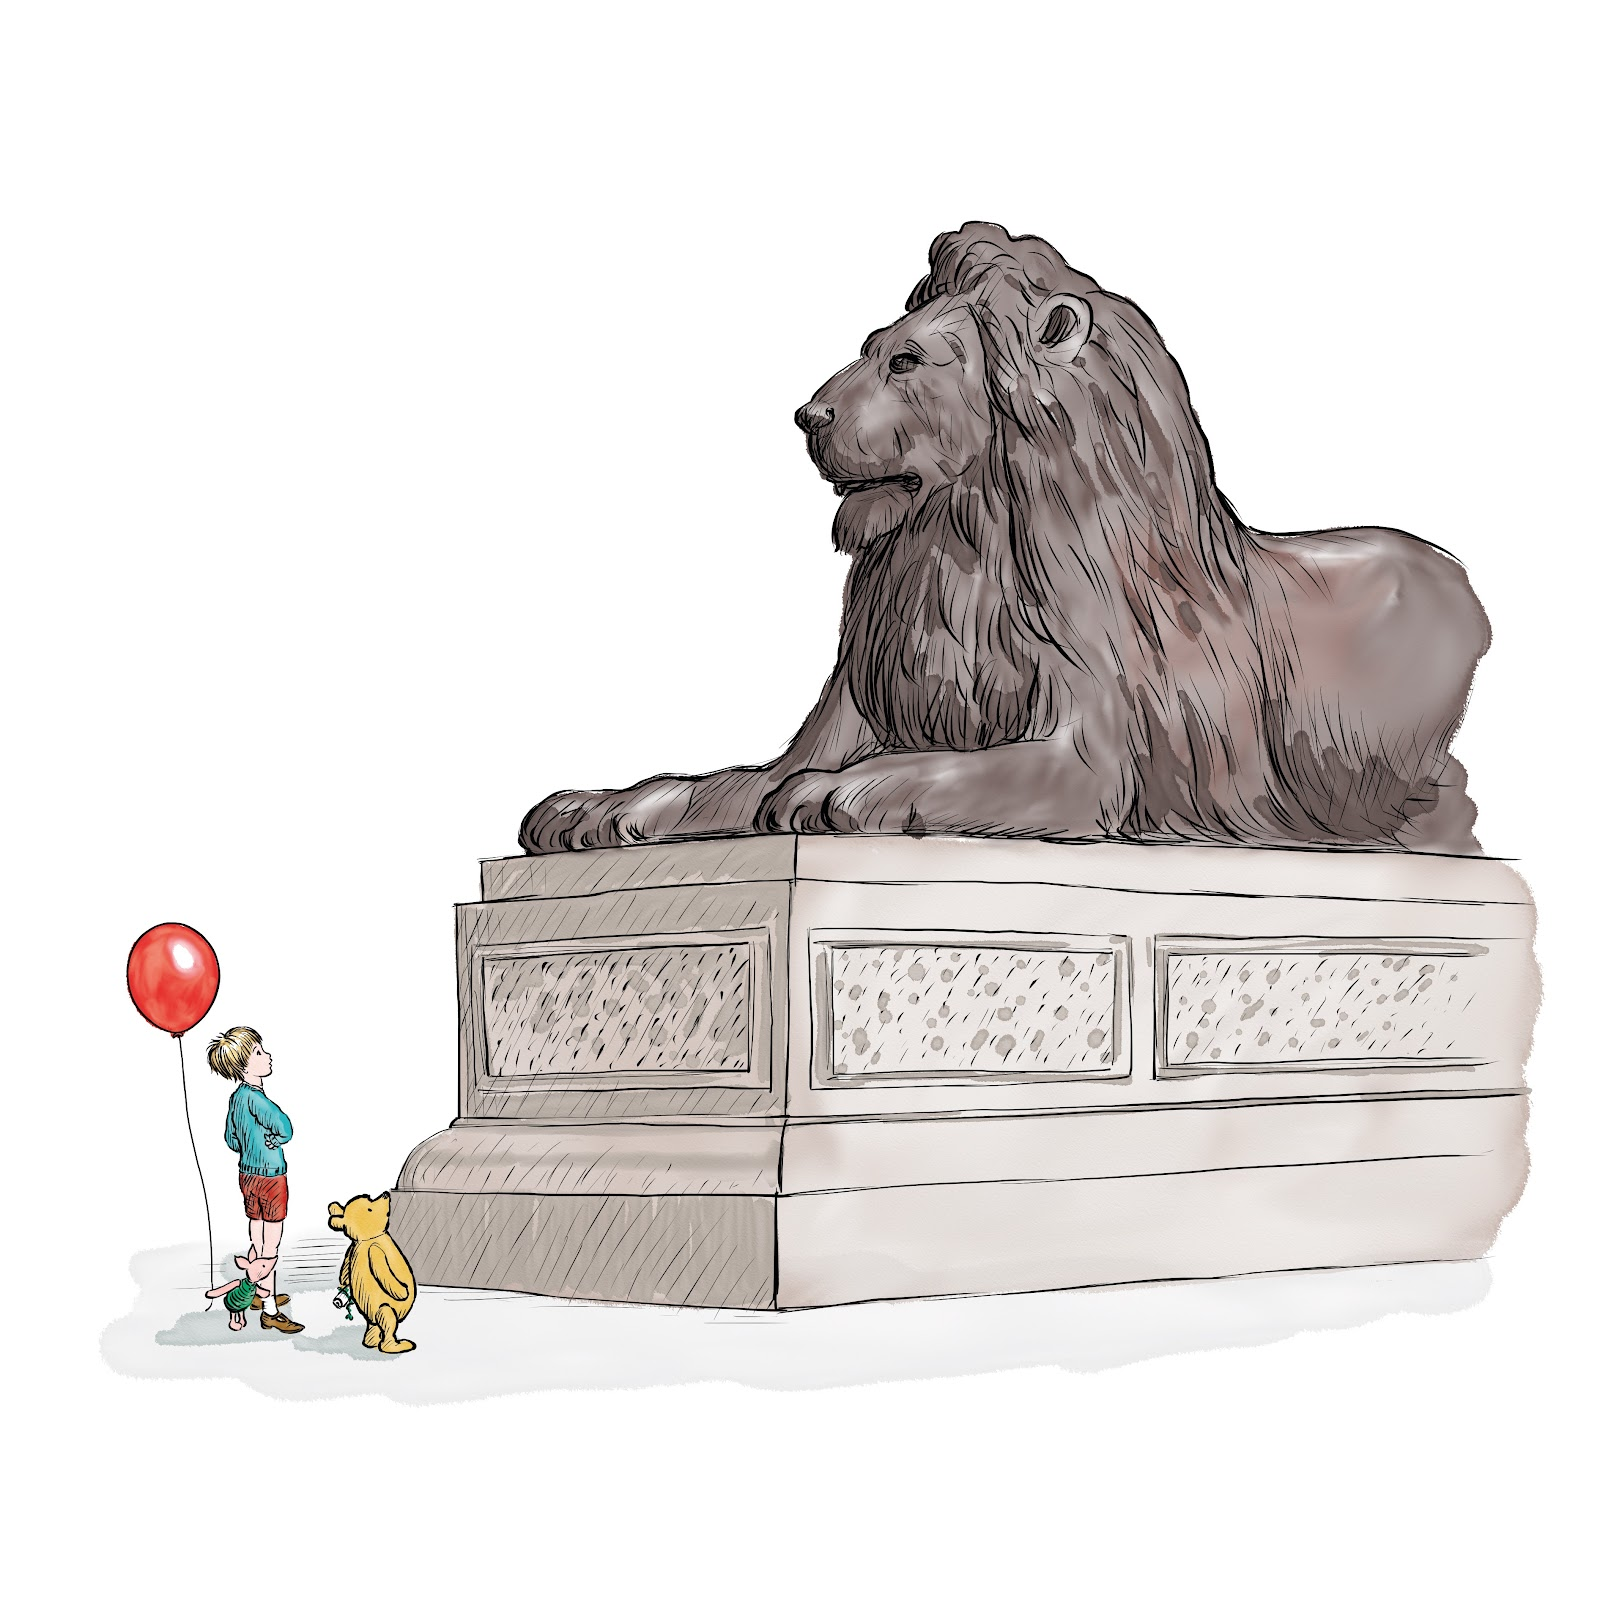 , Winnie the Pooh and the Royal Birthday – Free Illustrated EBook and Audio Adventure